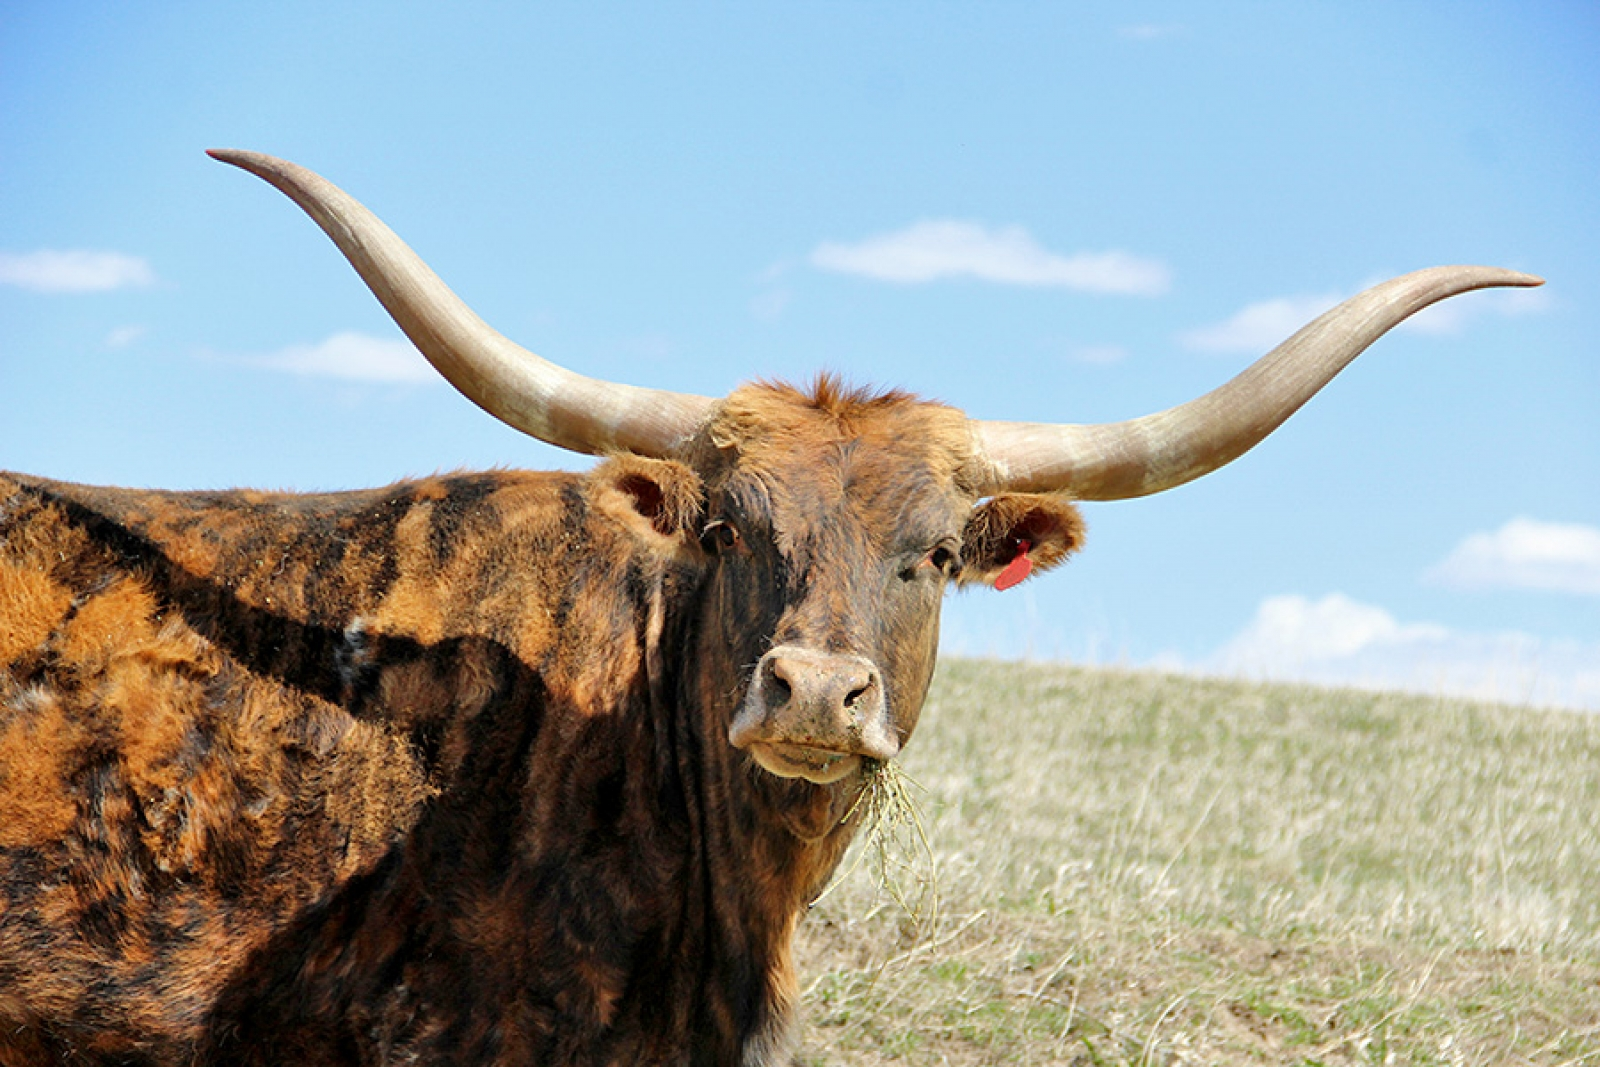 The majestic power of longhorns up close